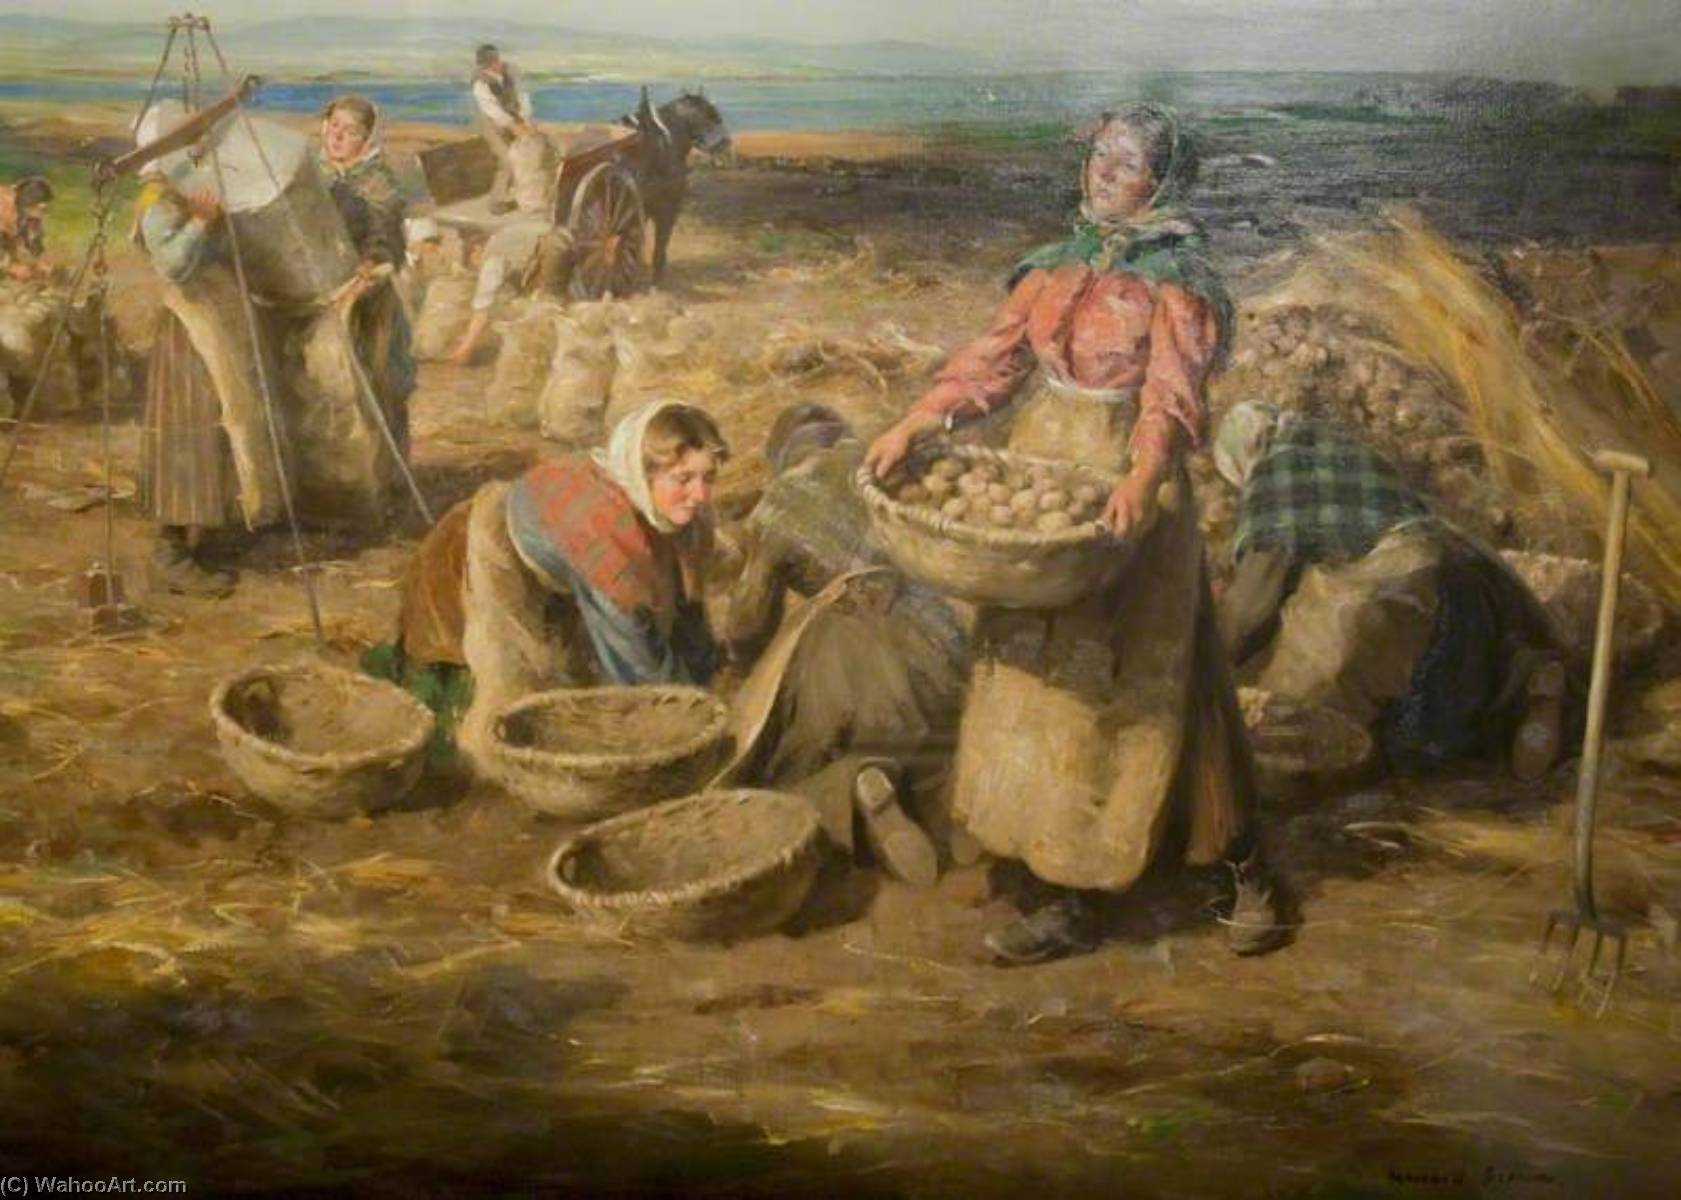 Waling Potatoes by William Marshall Brown | Paintings Reproductions William Marshall Brown | WahooArt.com